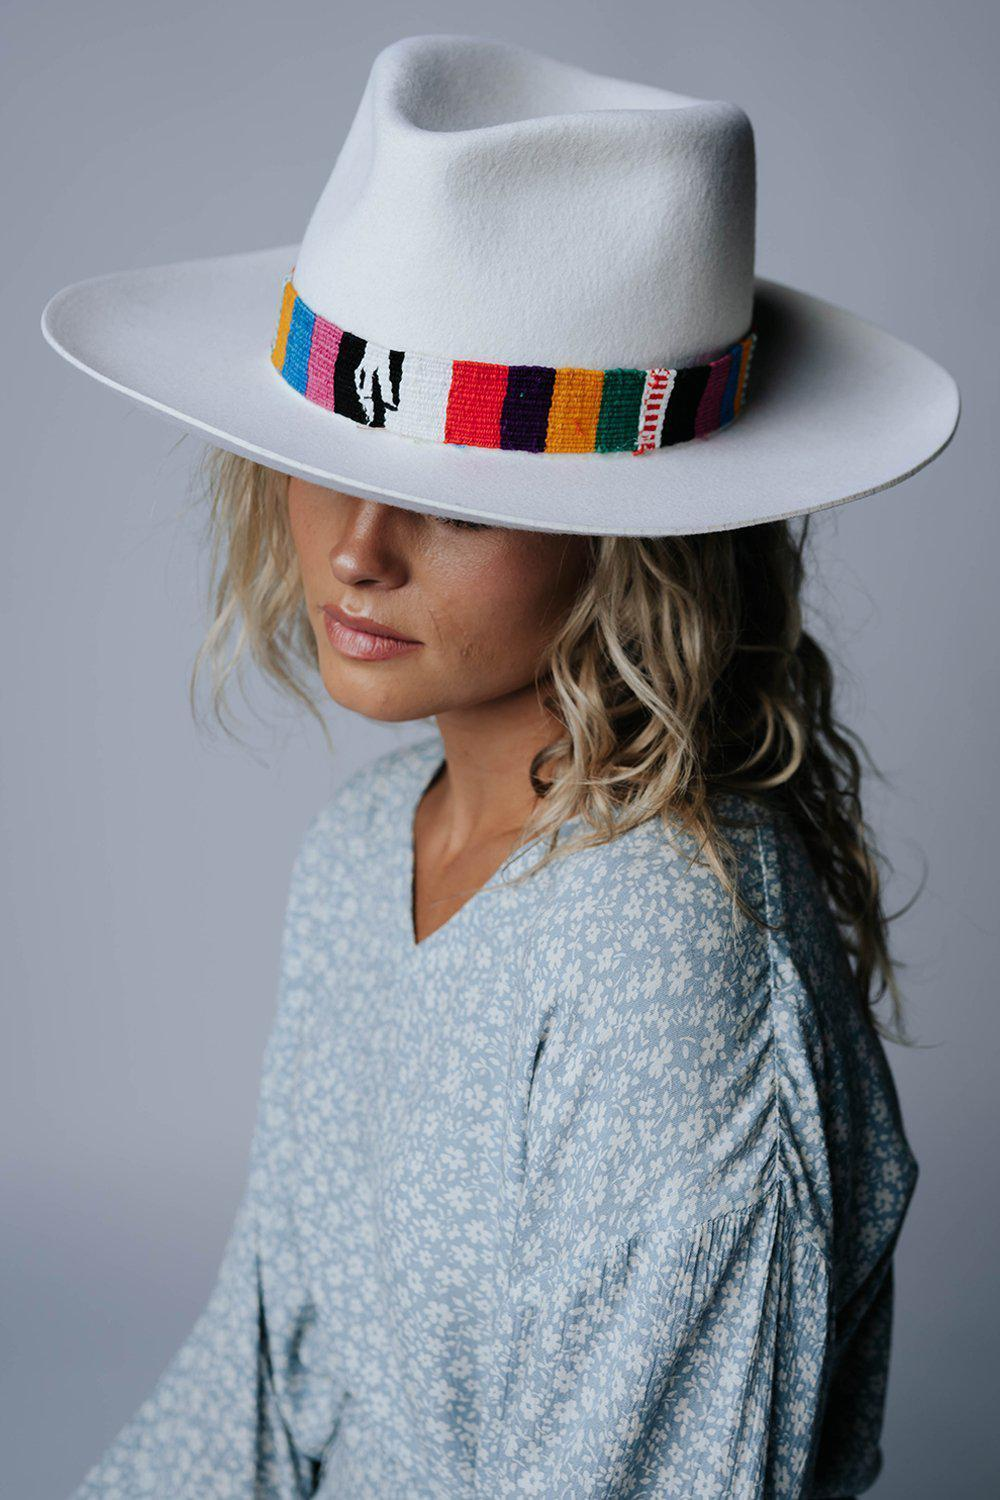 best_seller, Viva Mexico Hat in Ivory, Accessory, women's clothing, dresses, skirts, coats, jackets, shoes, boots, tops, tee shirts, jeans, free people, levi's, rollas, jumpsuits, bottoms, tops, sweaters, pullovers, pants, shorts, sweats,.